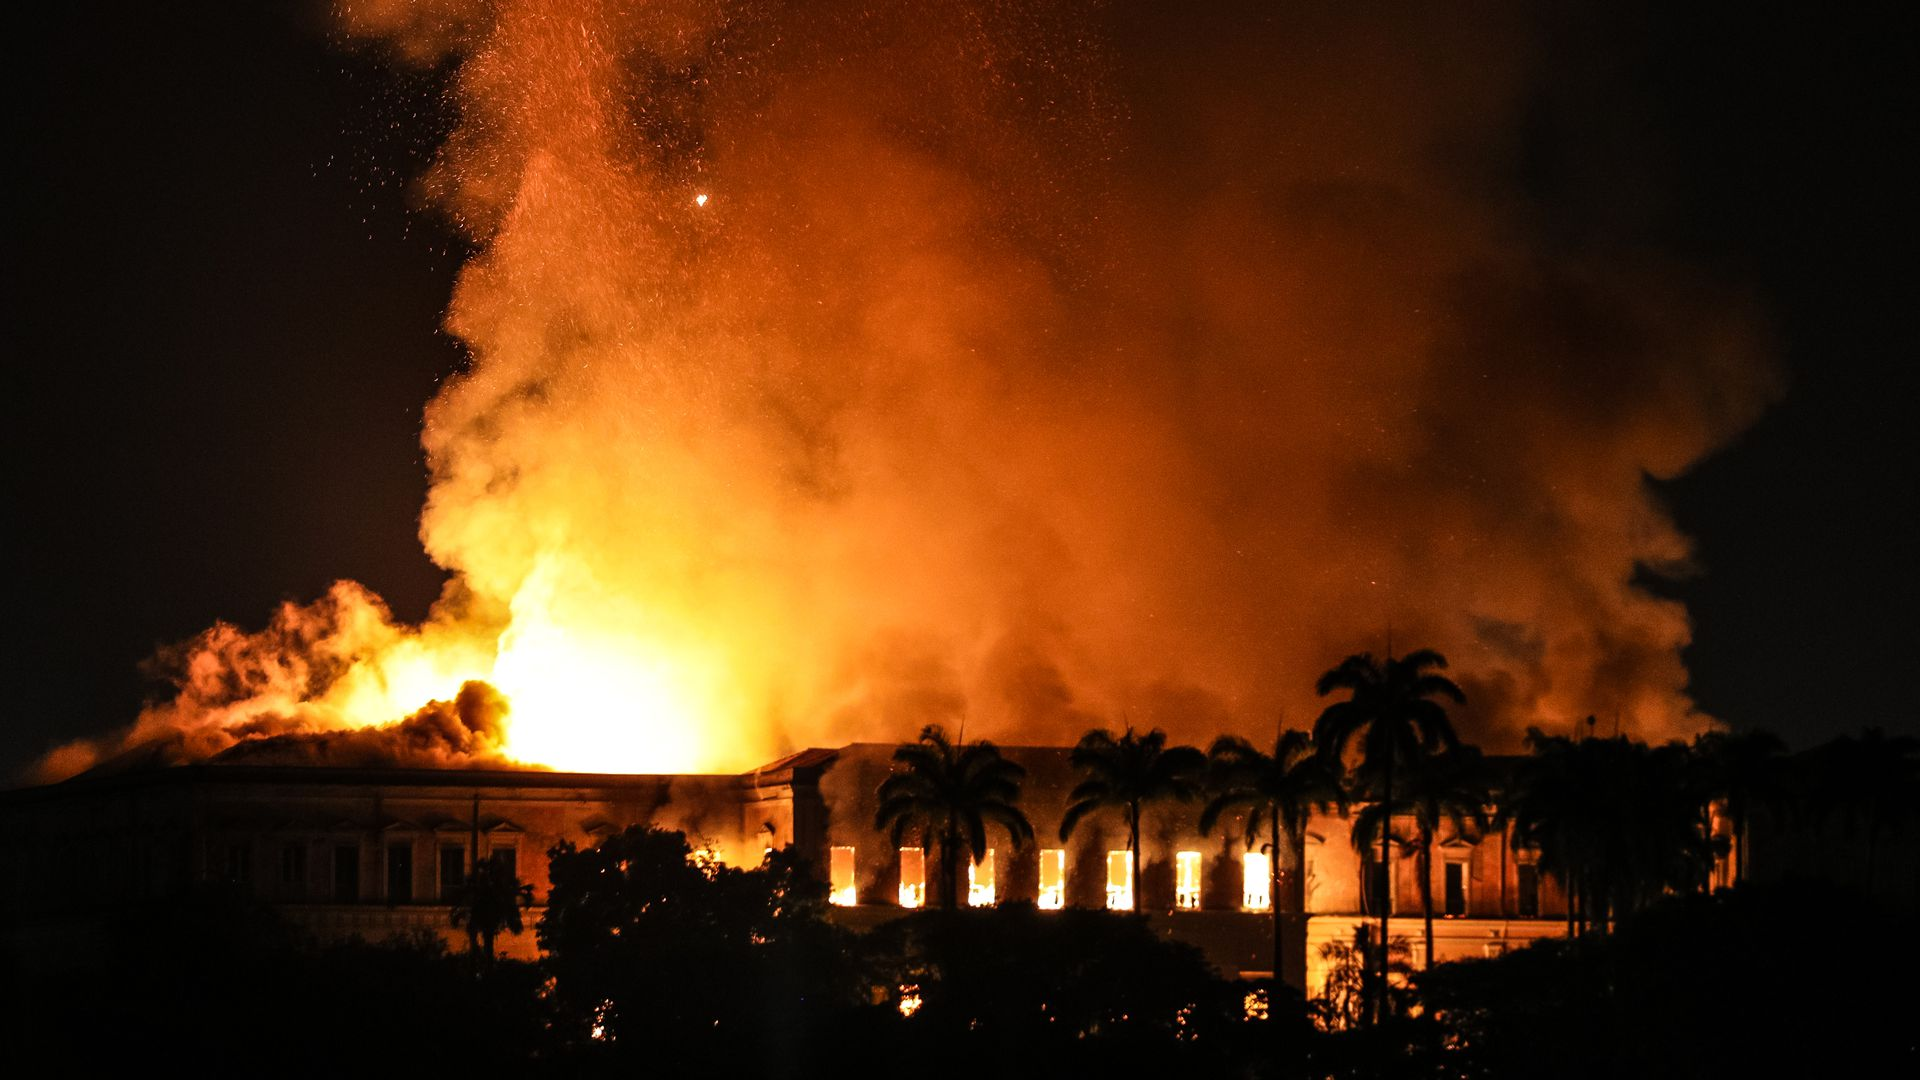 Fire at the National Museum of Brazil in Rio de Janeiro. Photo: Buda Mendes/Getty Images